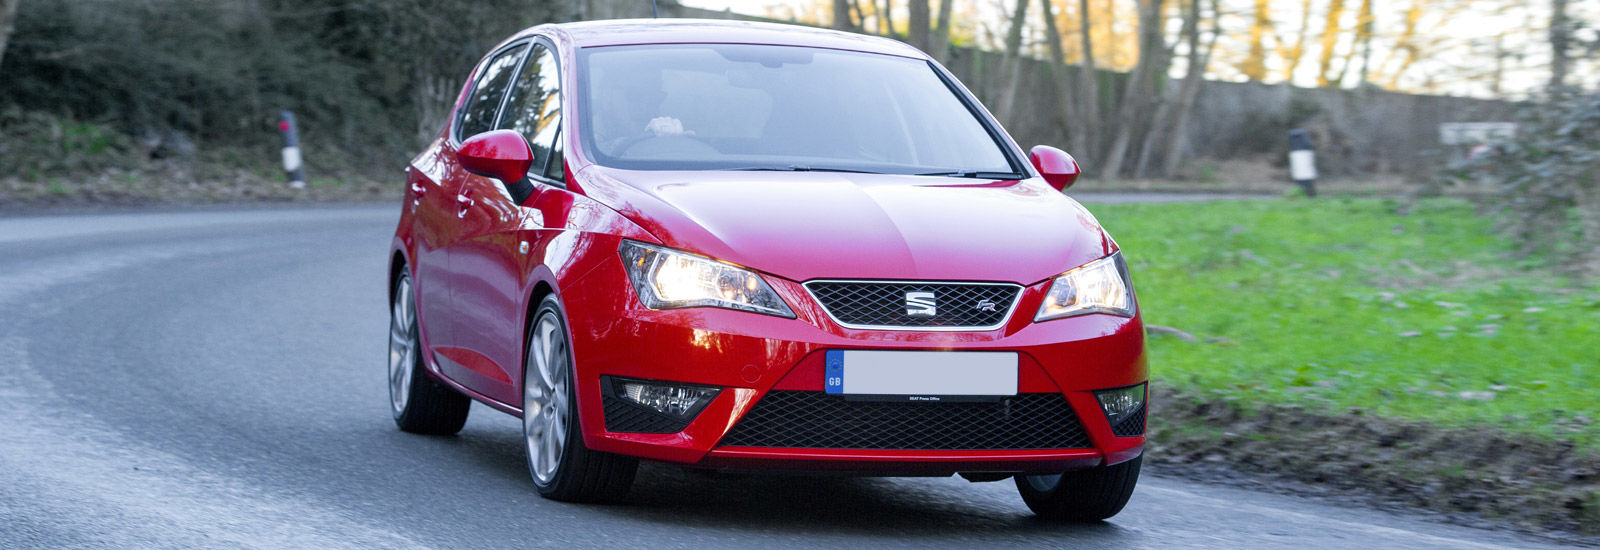 SEAT Ibiza sizes and dimensions guide | carwow